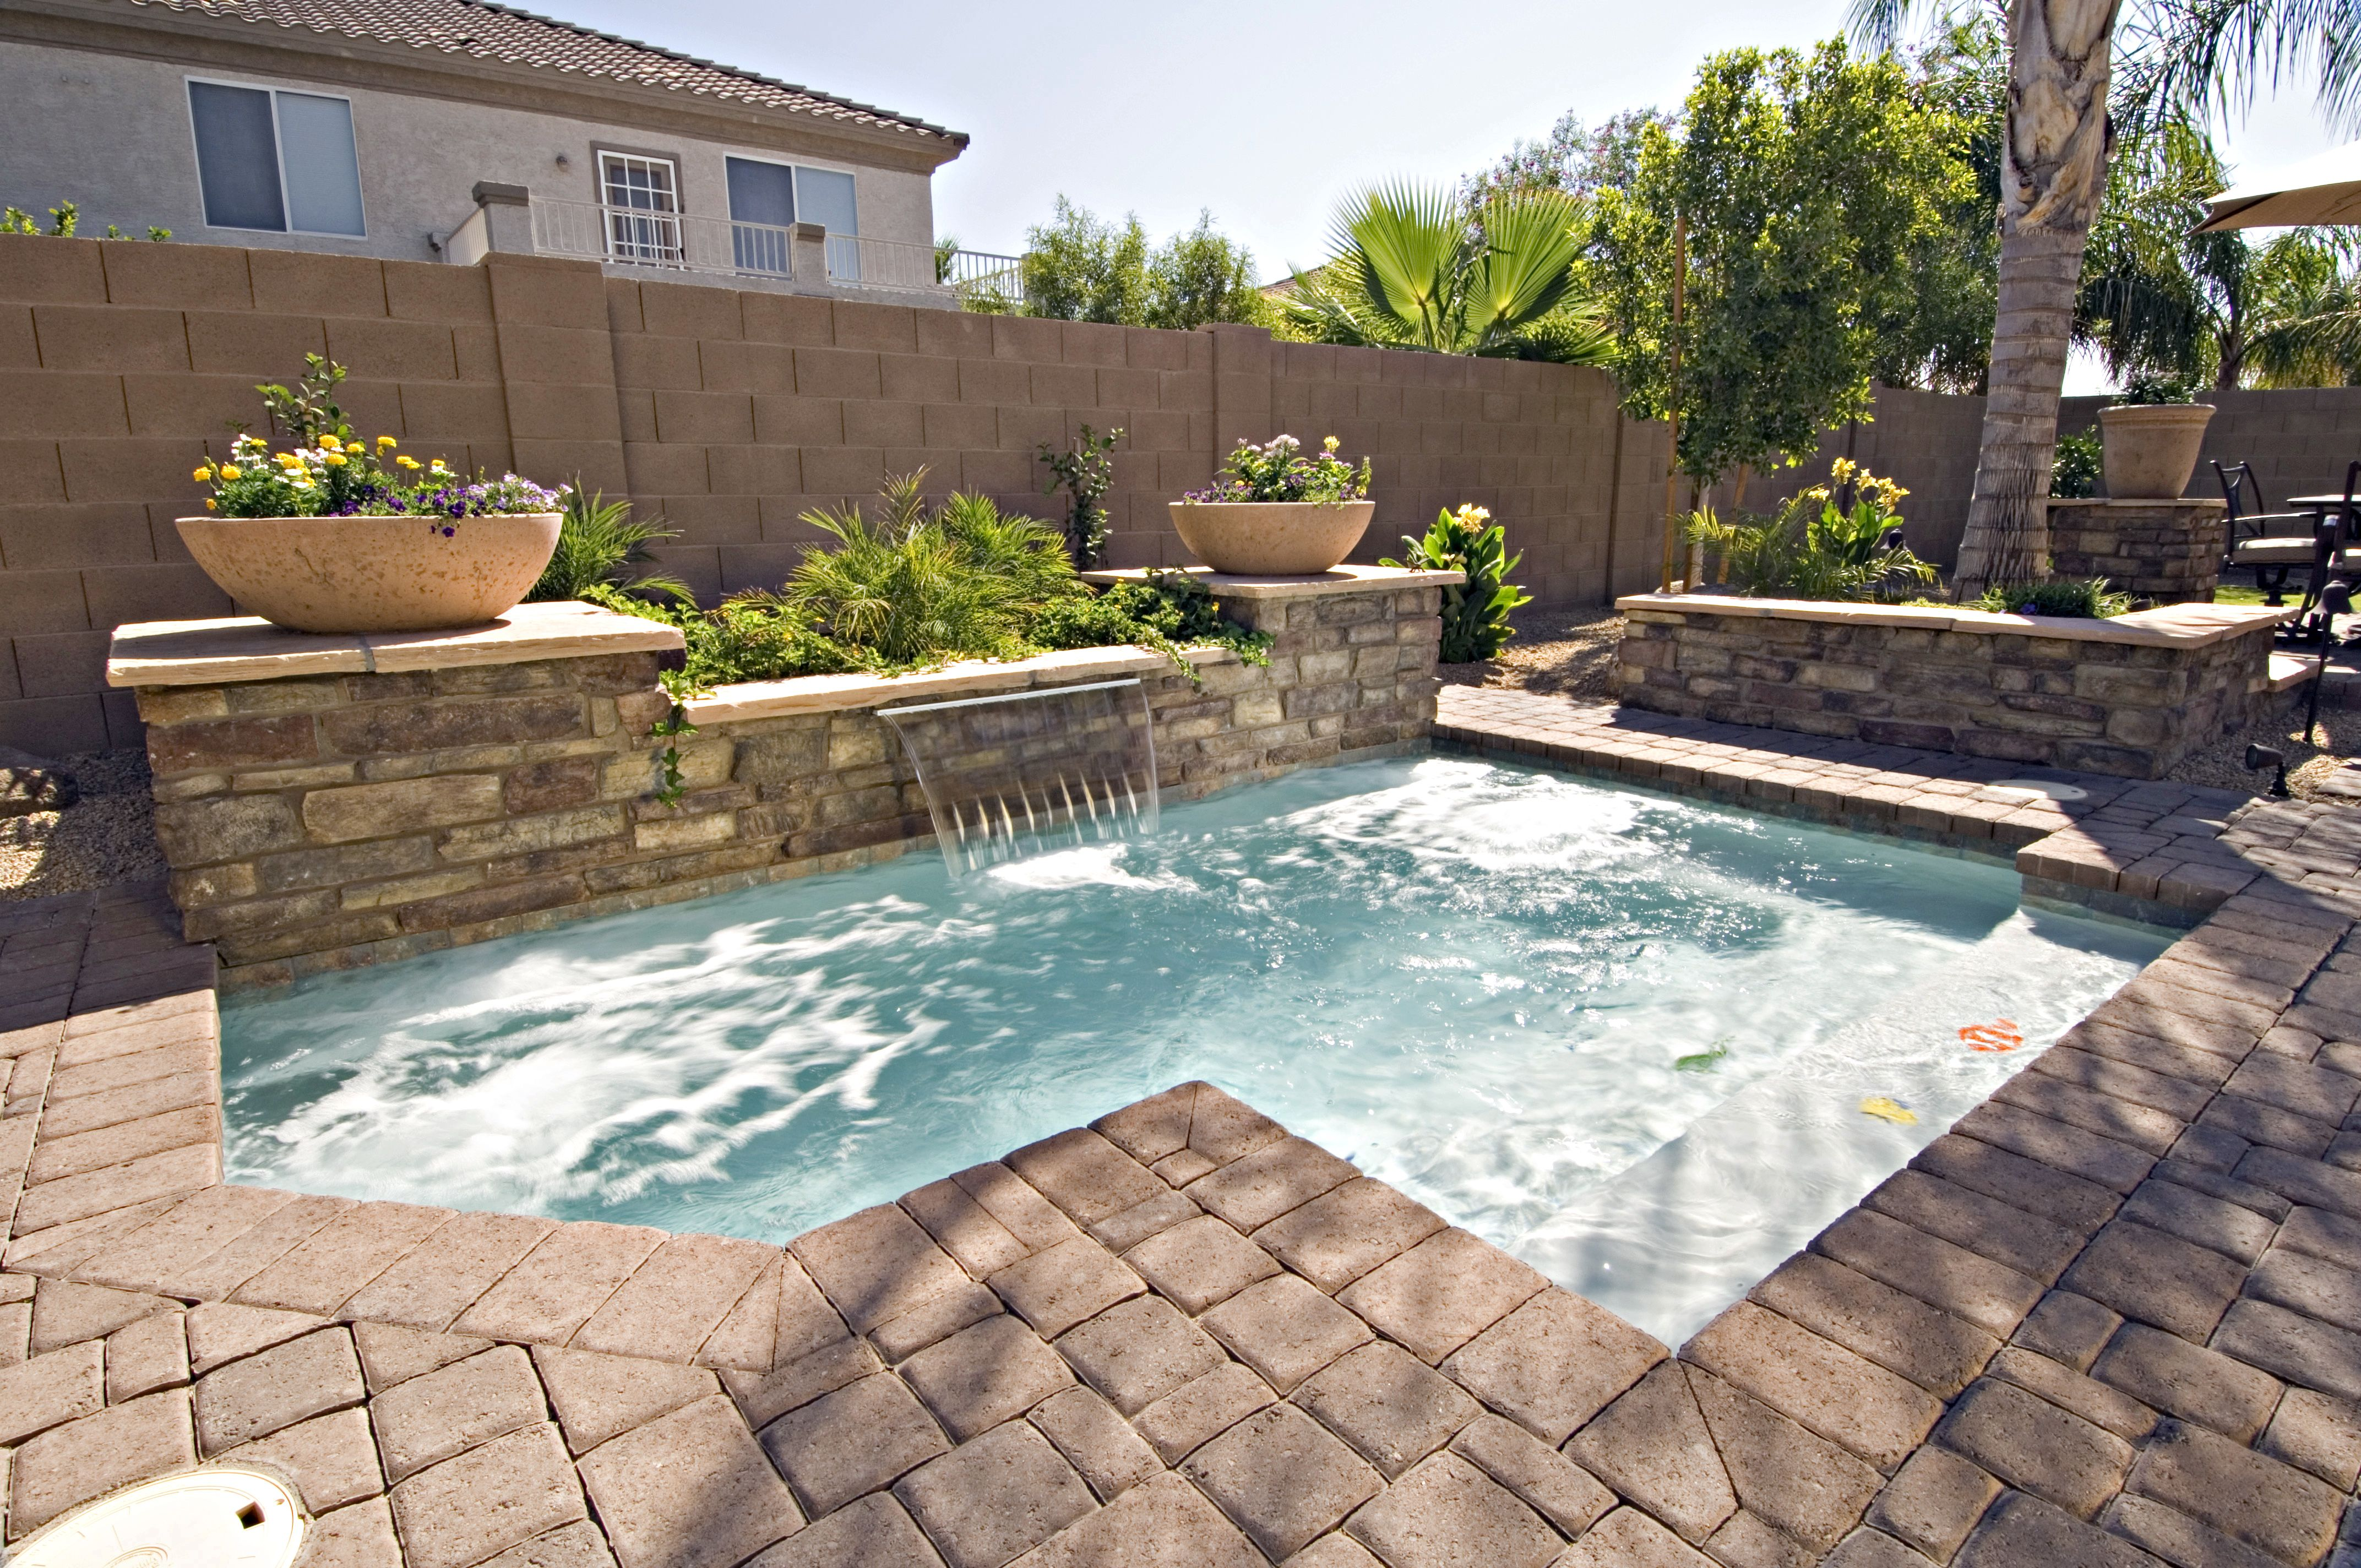 Small Inground Pool Ideas pool designs for small backyards signature pools spas inc small yard pools Small Inground Pools For Small Yards Design Ideas Small Inground